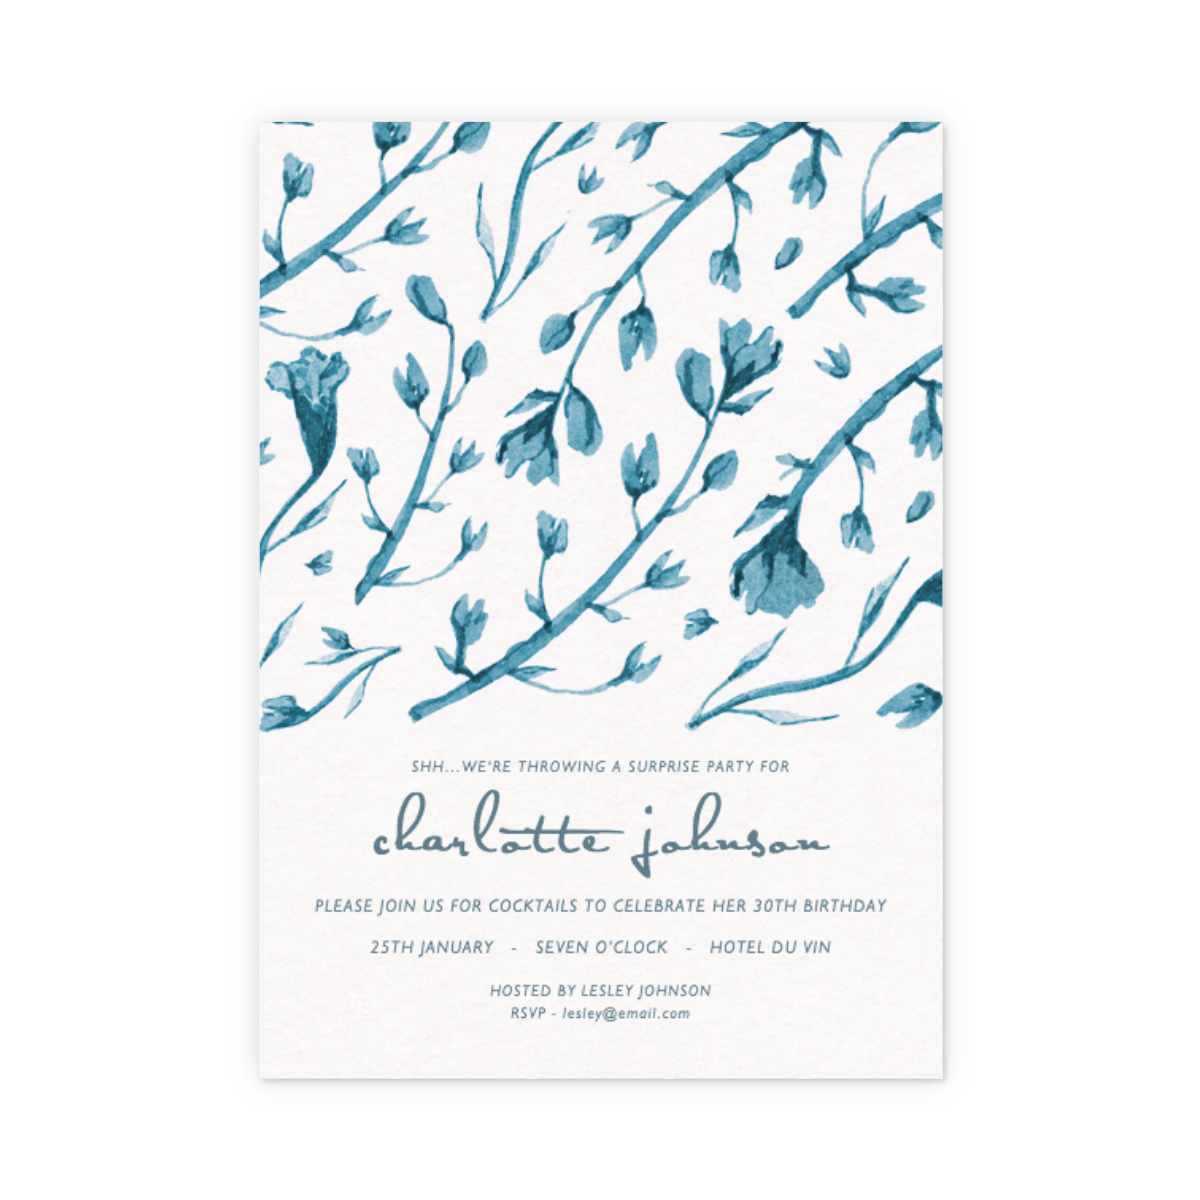 Https%3a%2f%2fwww.papier.com%2fproduct image%2f1010%2f4%2fpainterly florals 287 avant 1453909632.png?ixlib=rb 1.1